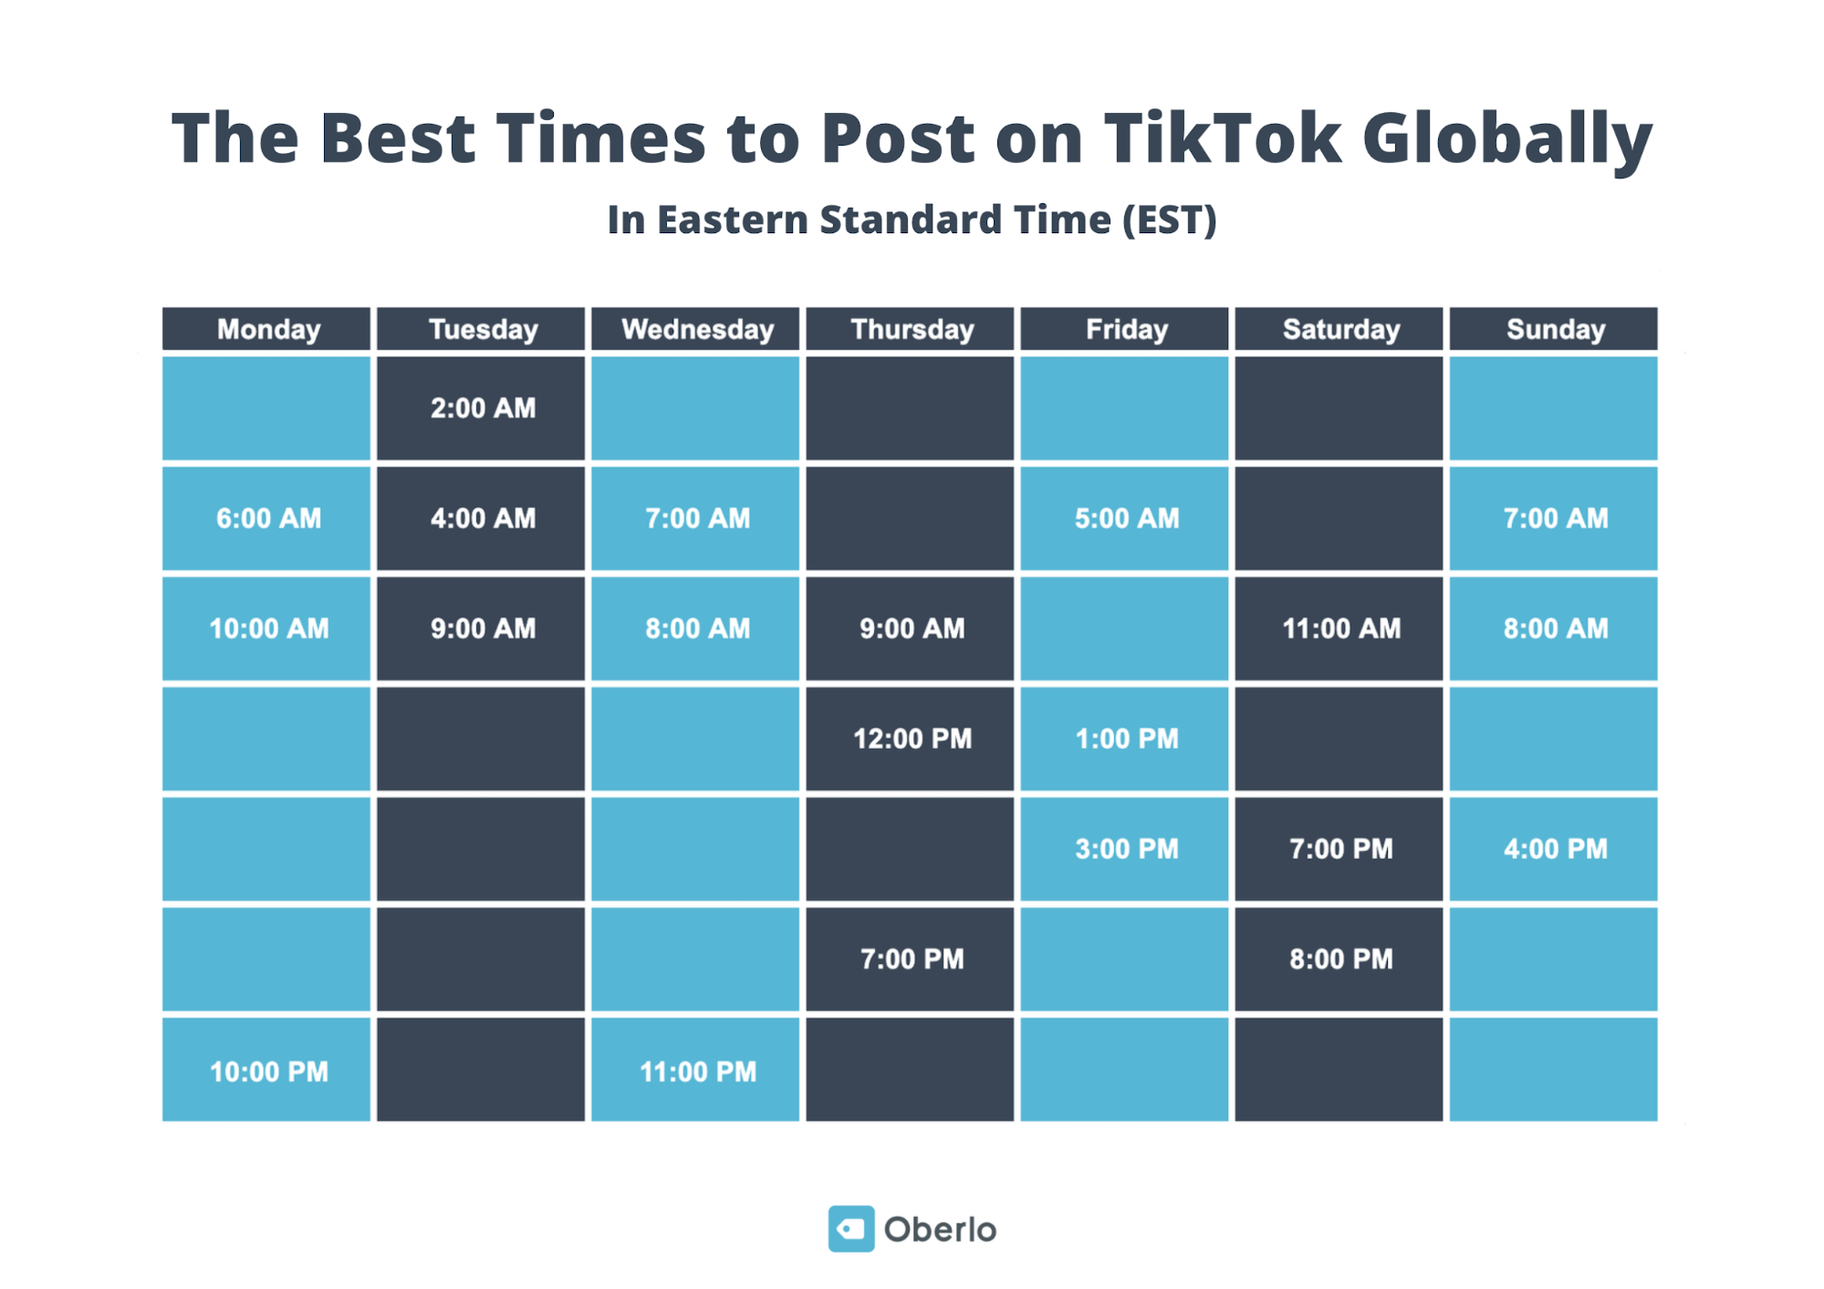 Best Times to Post on TikTok